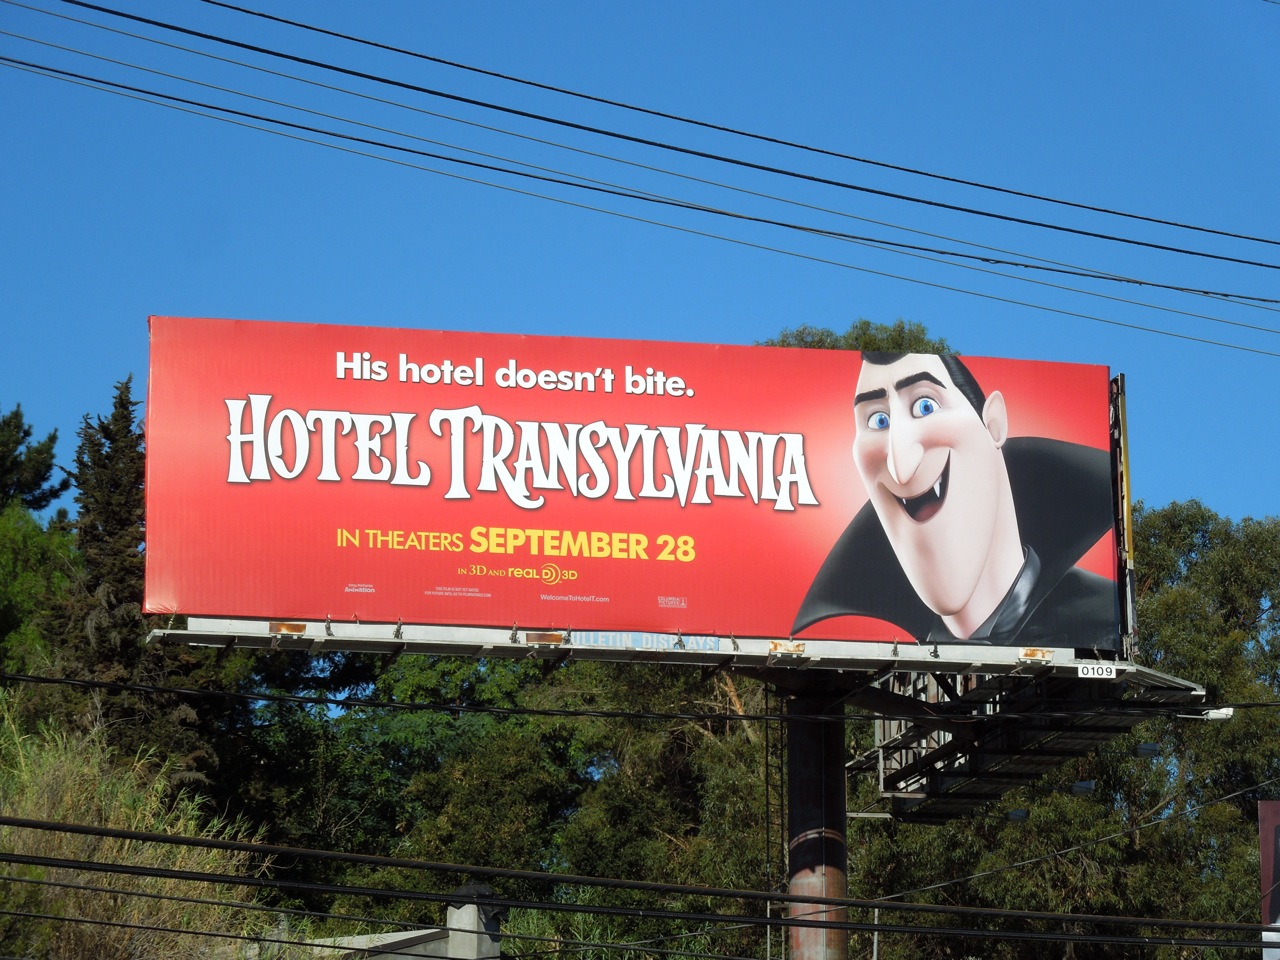 Daily billboard hotel transylvania movie billboards for Daily hotel